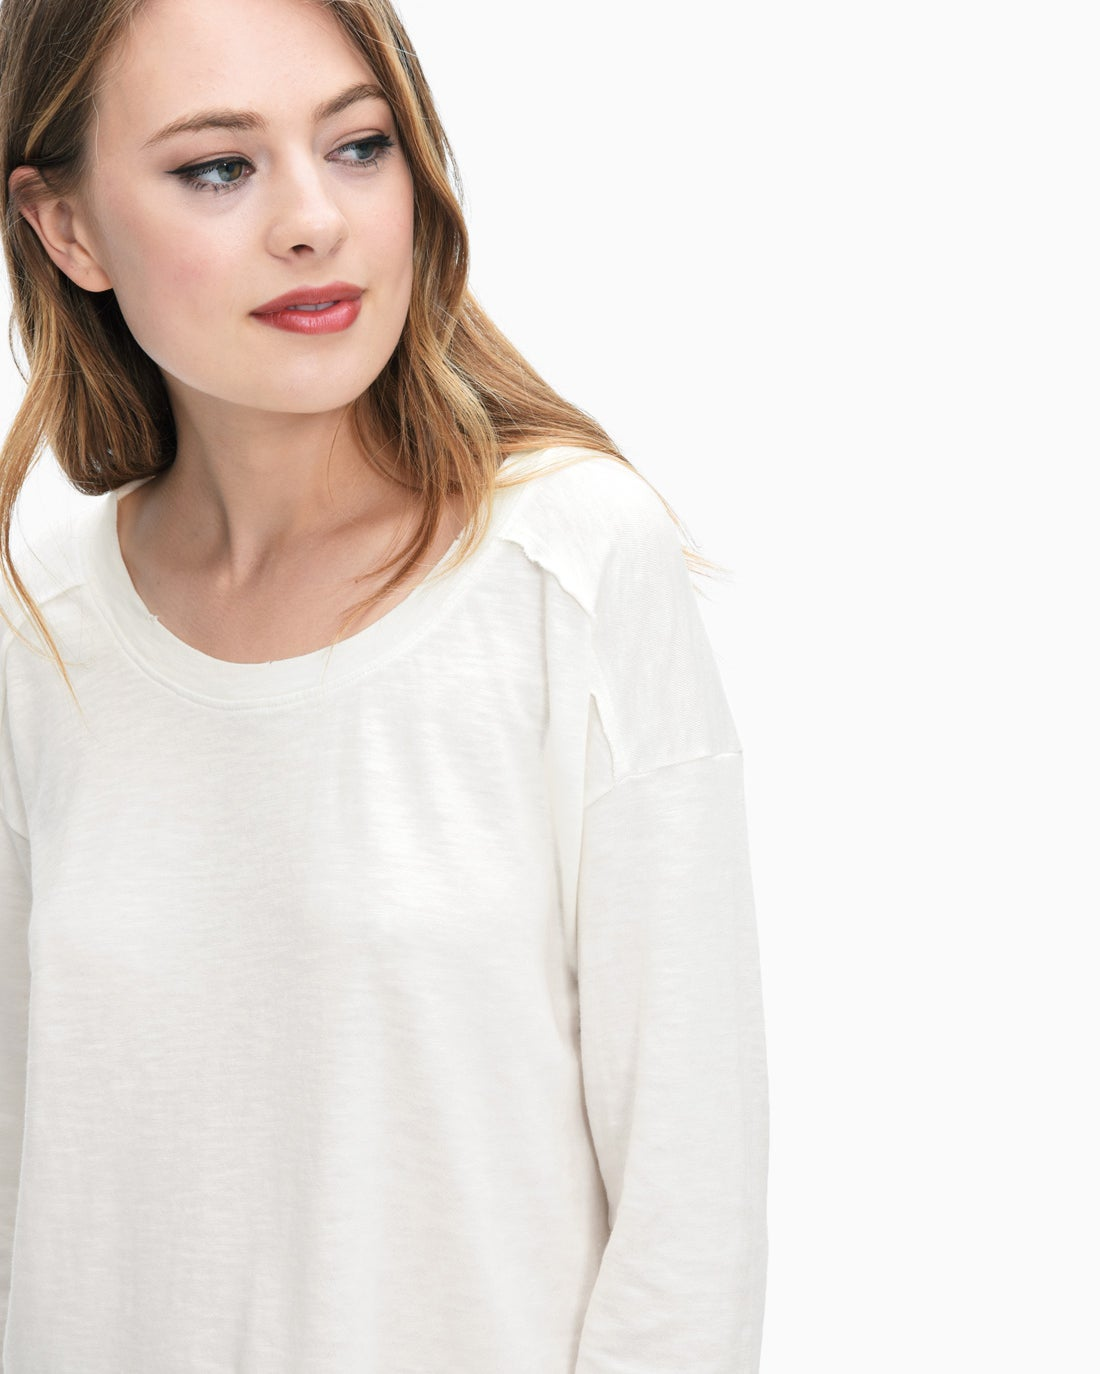 Splendid Women's Cotton Slub Sweatshirt Tee